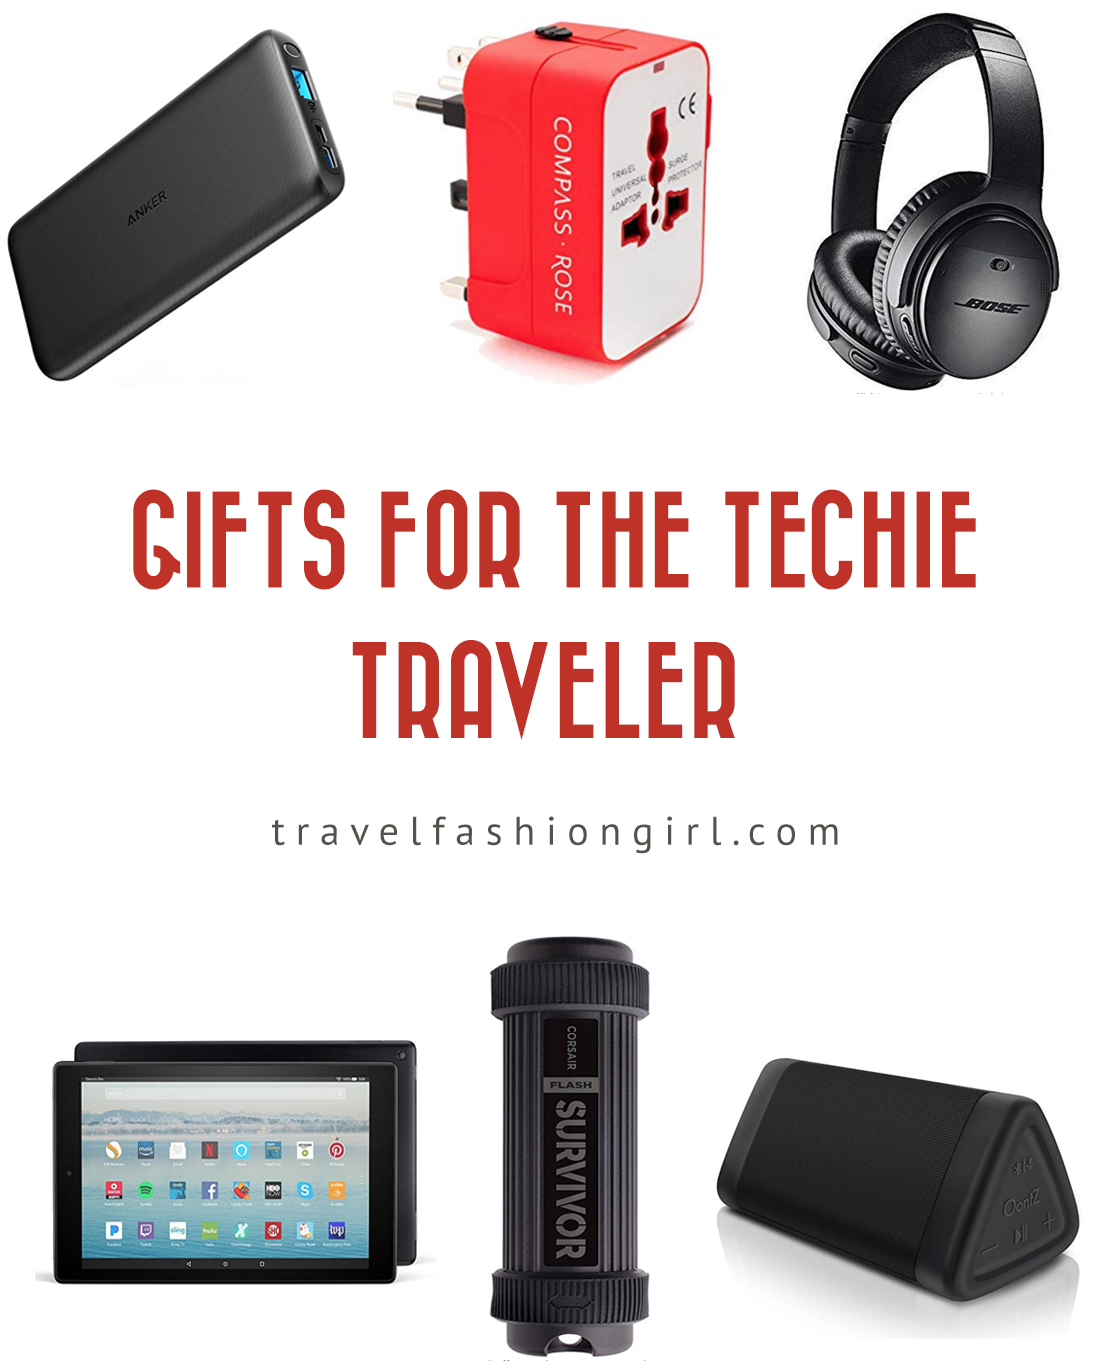 gadget-gifts-must-have